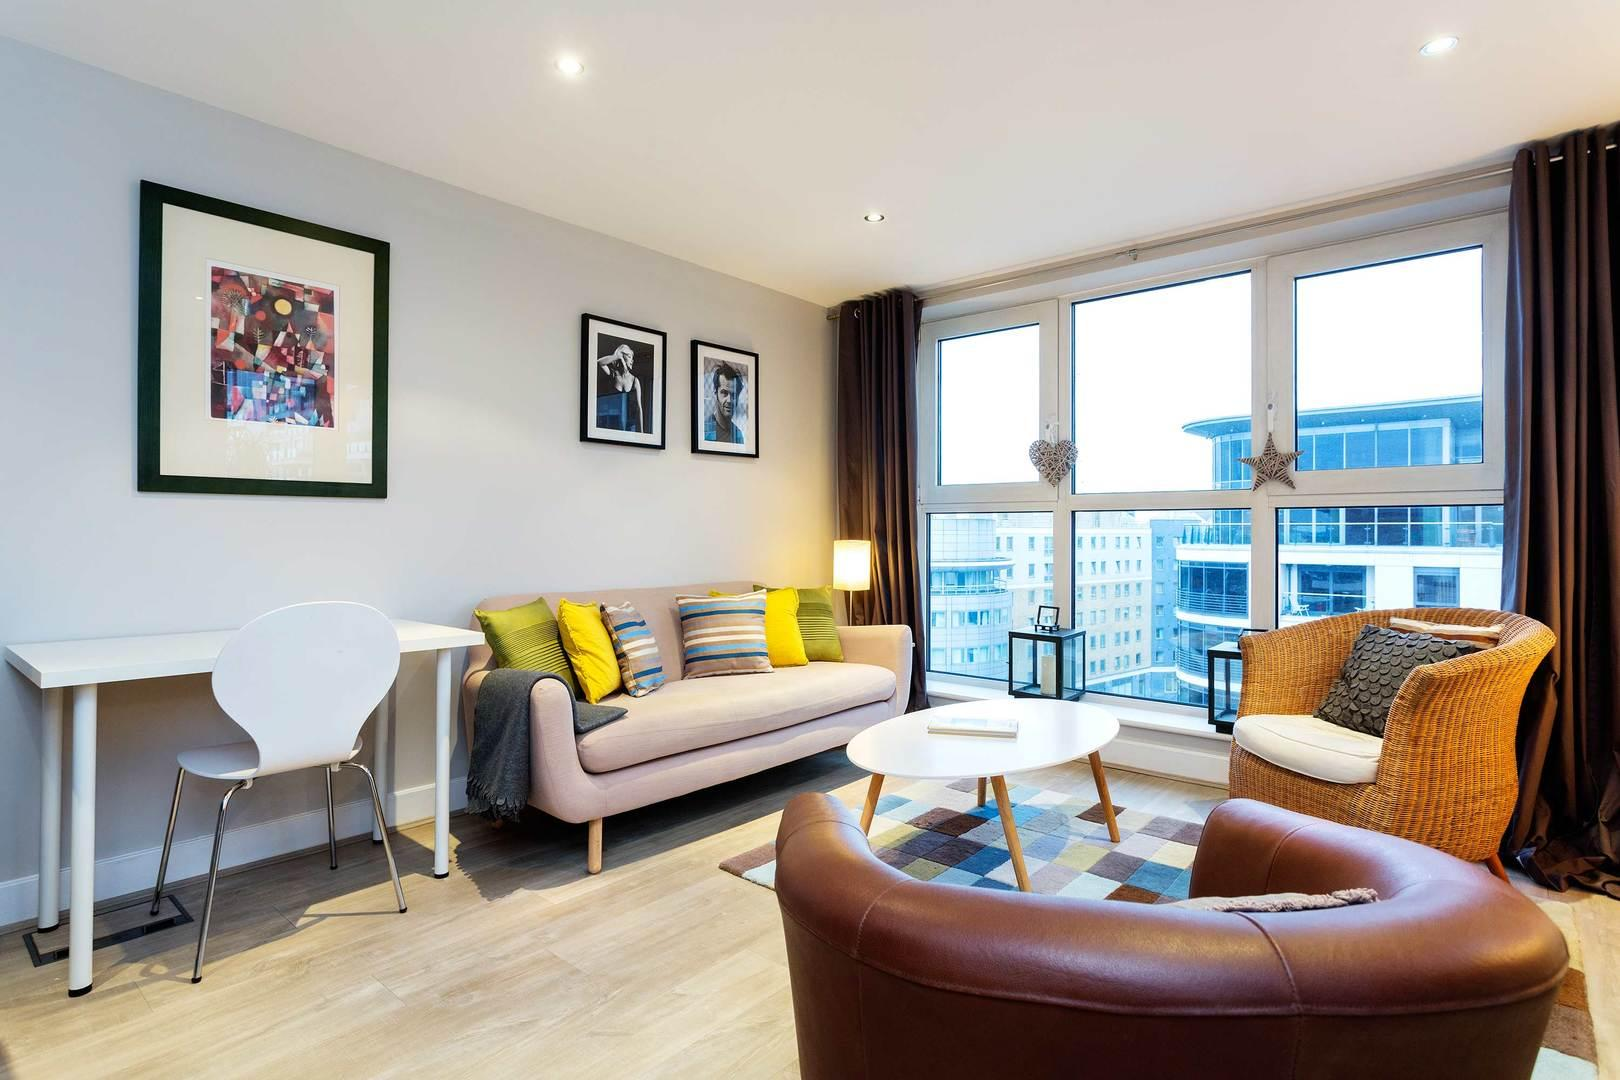 Property Image 1 - Stylish Apartment in Imperial Wharf with Impressive Views